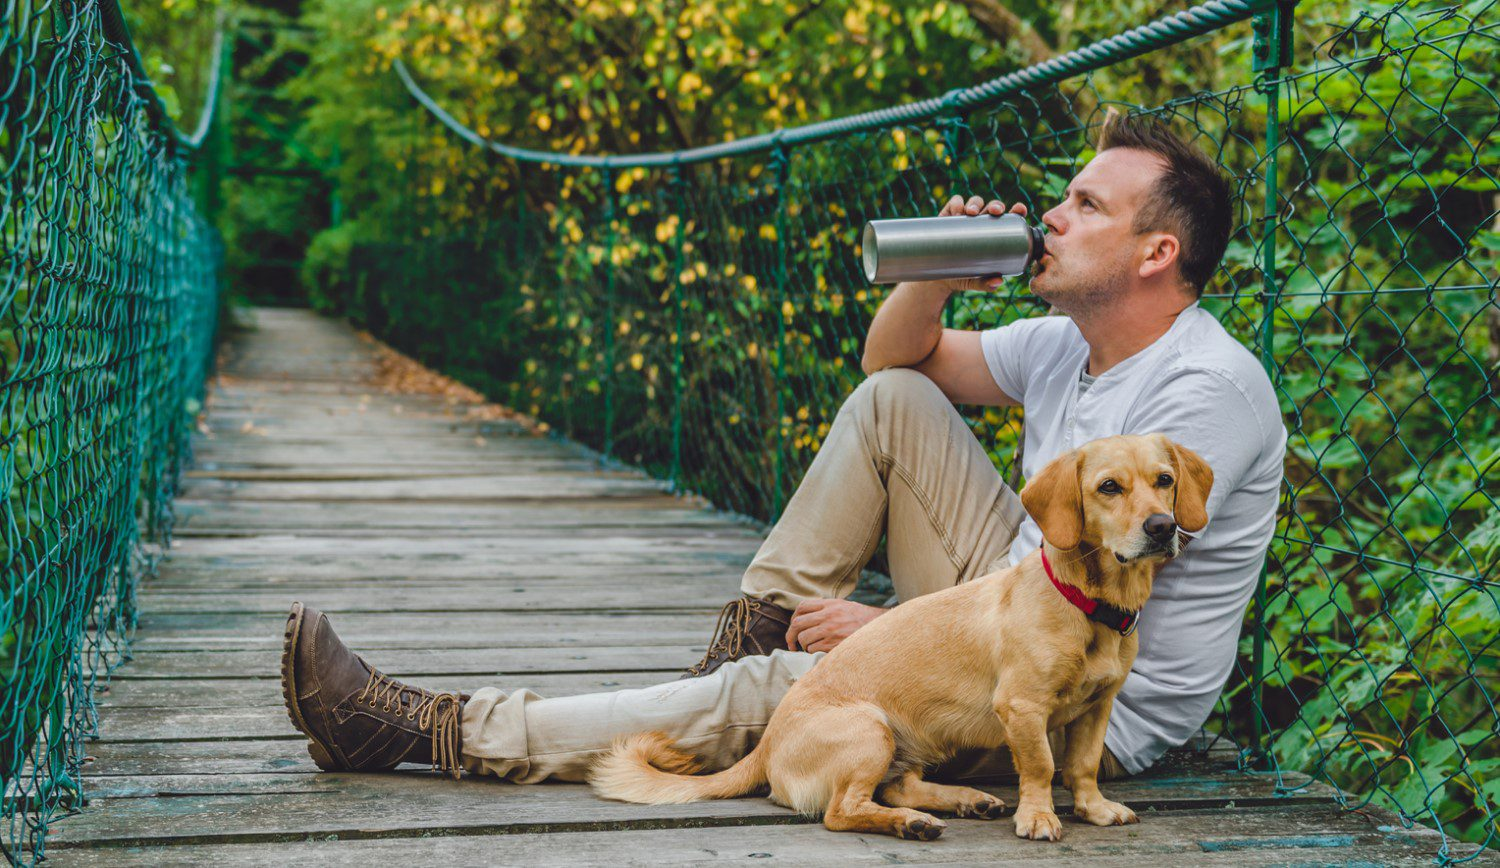 Male hiker taking a rest on a wooden bridge with his dog while drinking water